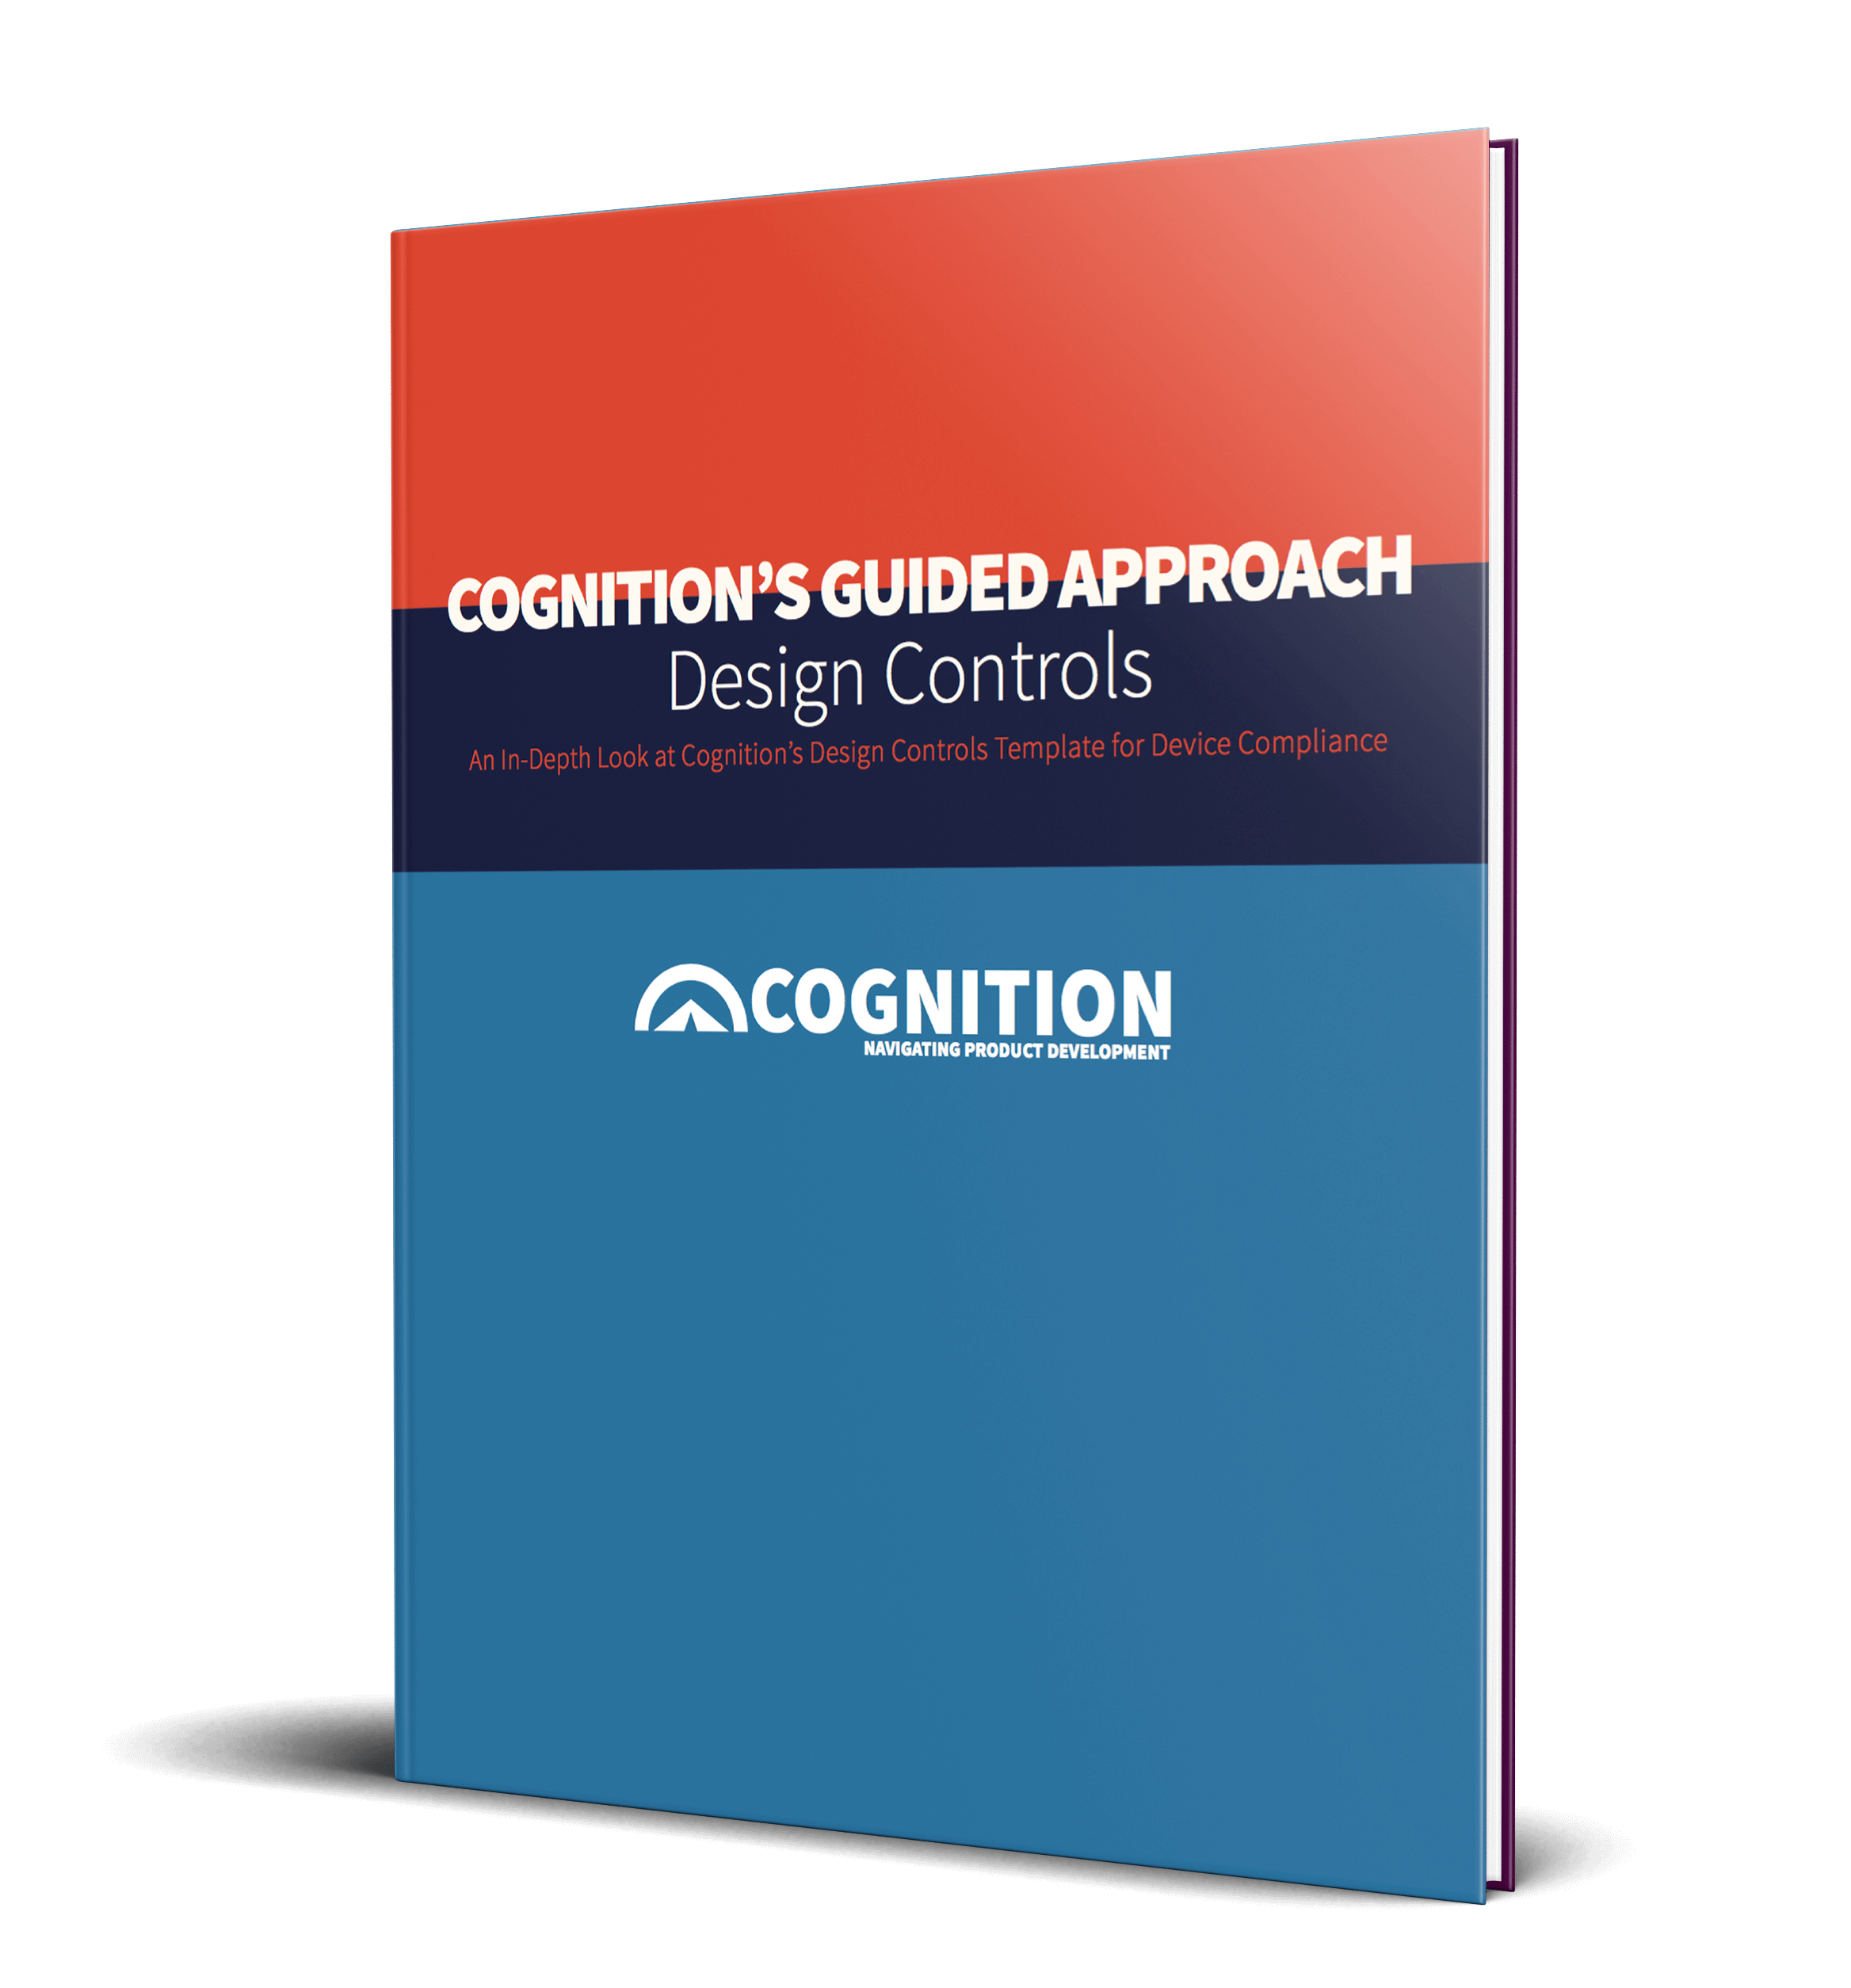 Cognition's Guided Approach to Design Controls White Paper Download